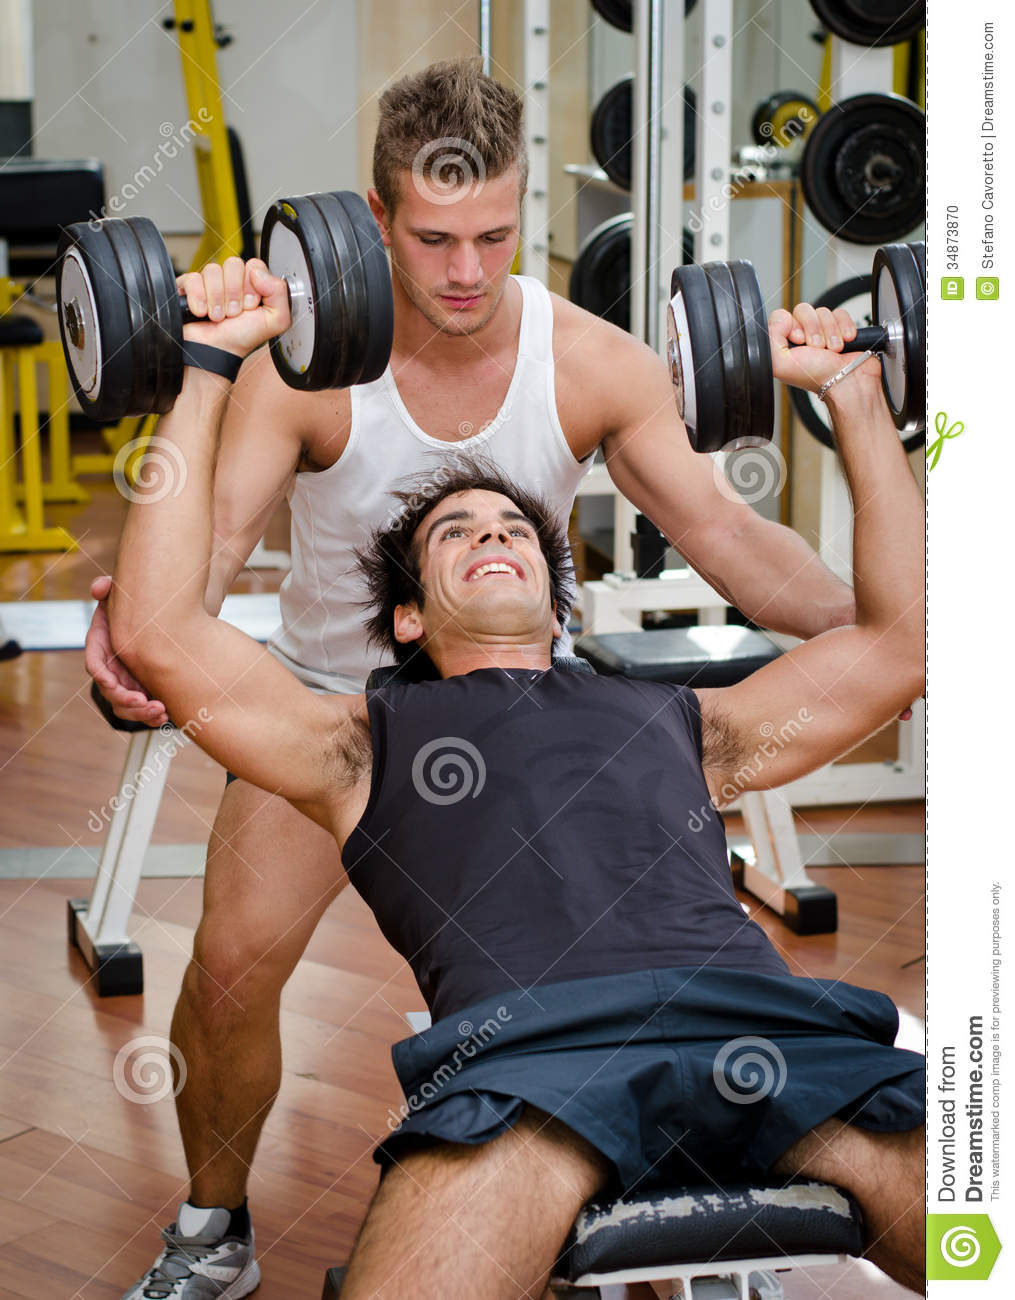 Is It Ever Okay To Date Your Personal Trainer